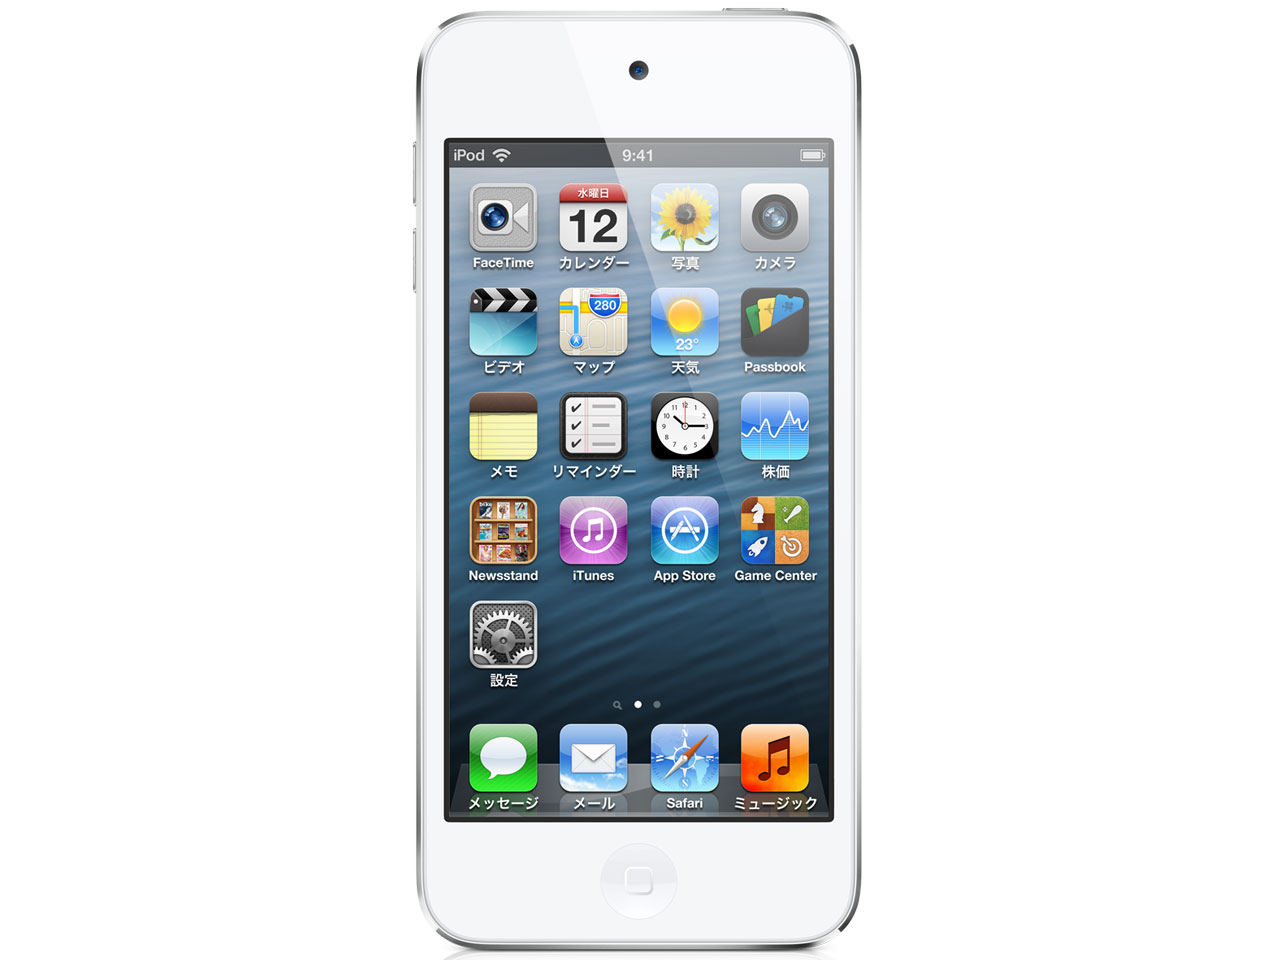 iPod touch MD720J/A [32GB �z���C�g&�V���o�[] �̐��i�摜